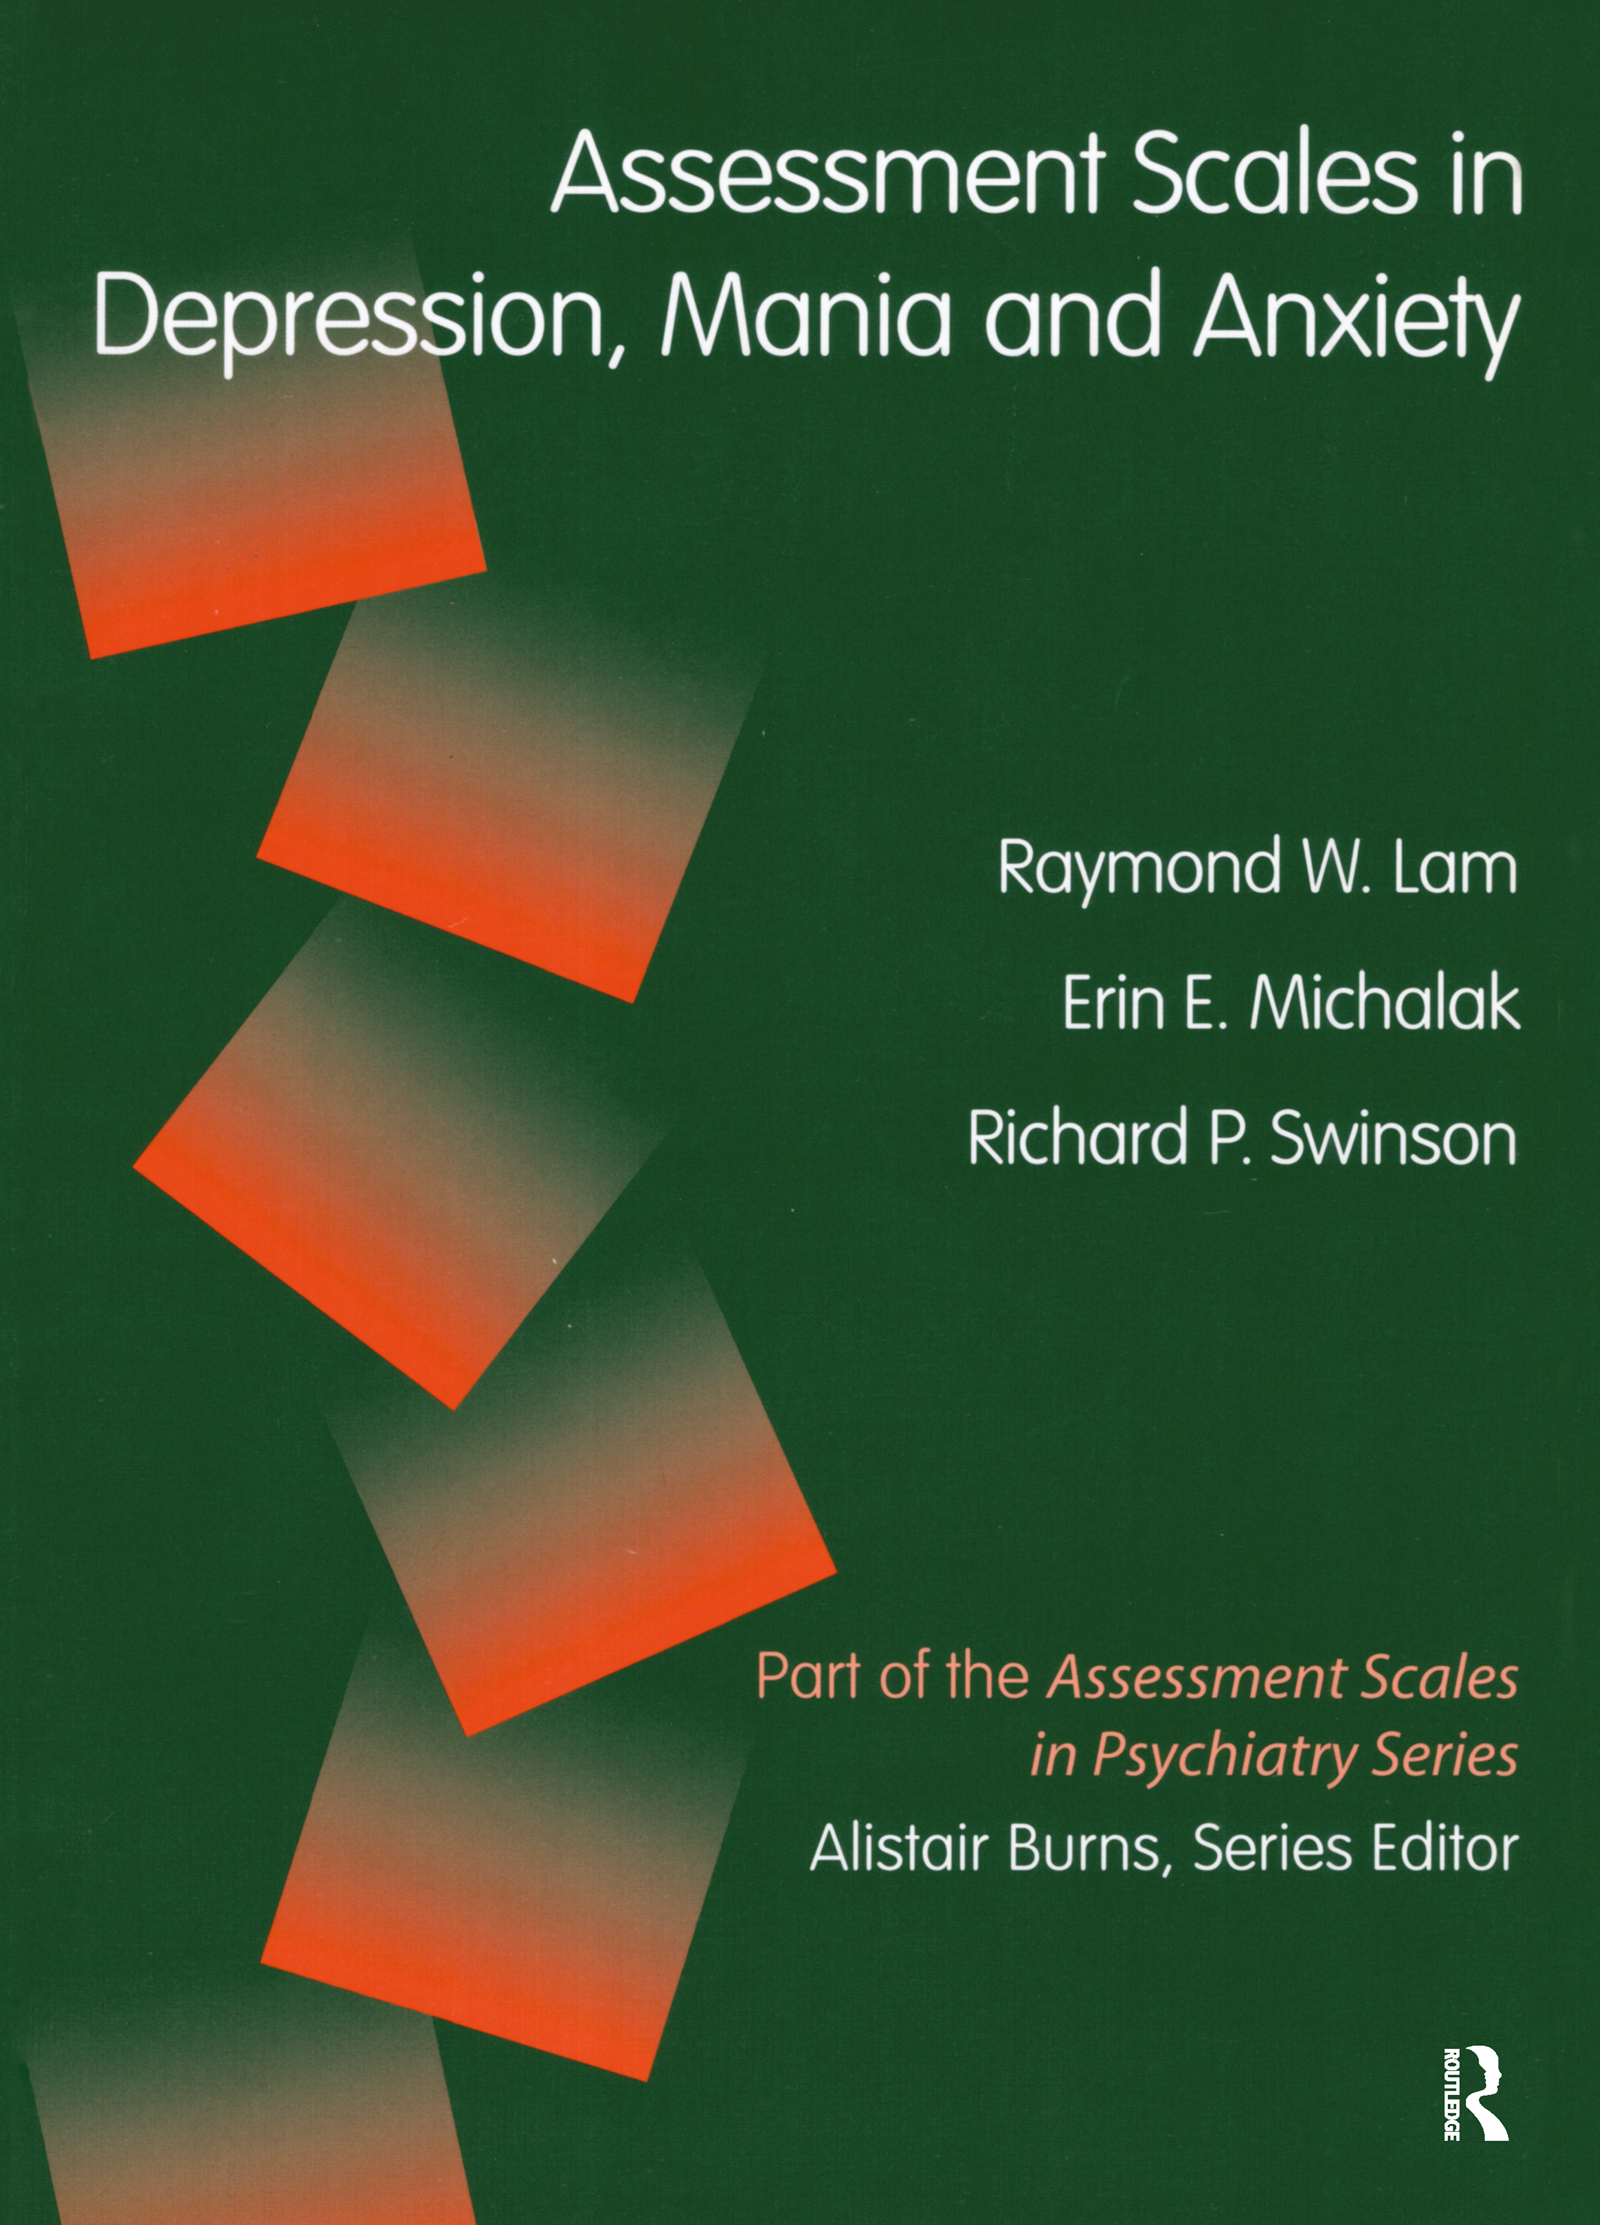 Assessment Scales in Depression and Anxiety - CORPORATE